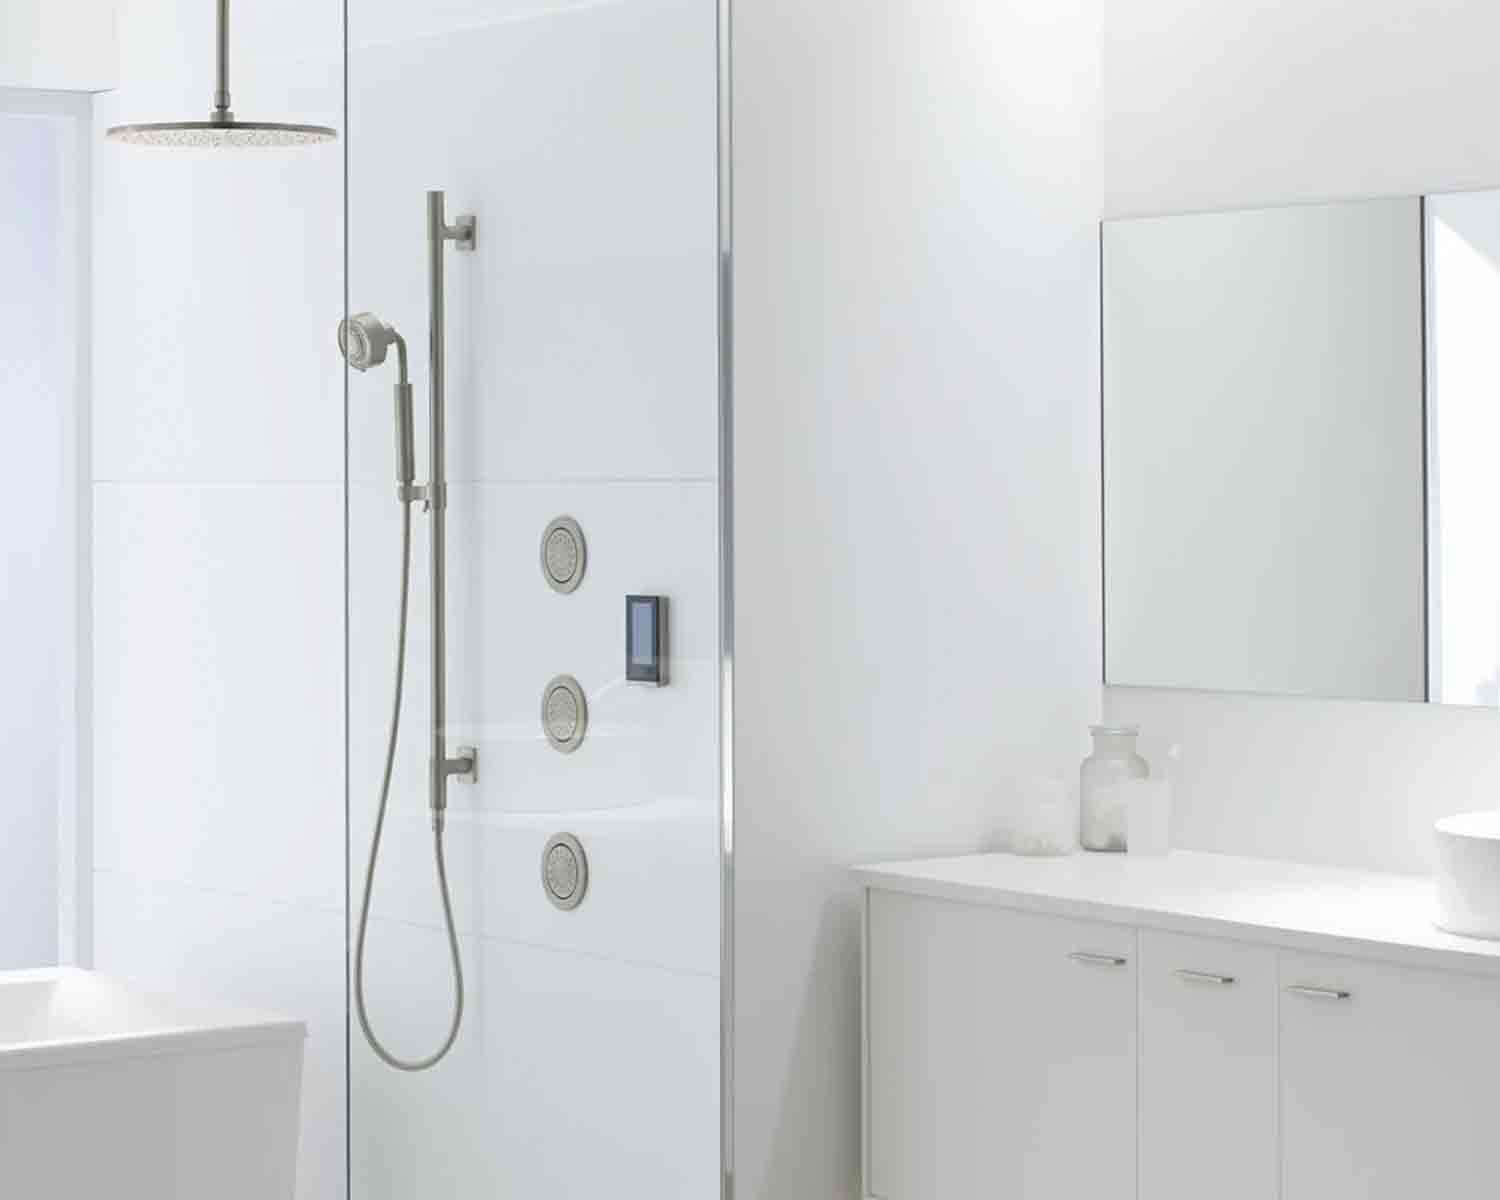 Types of Smart Showers